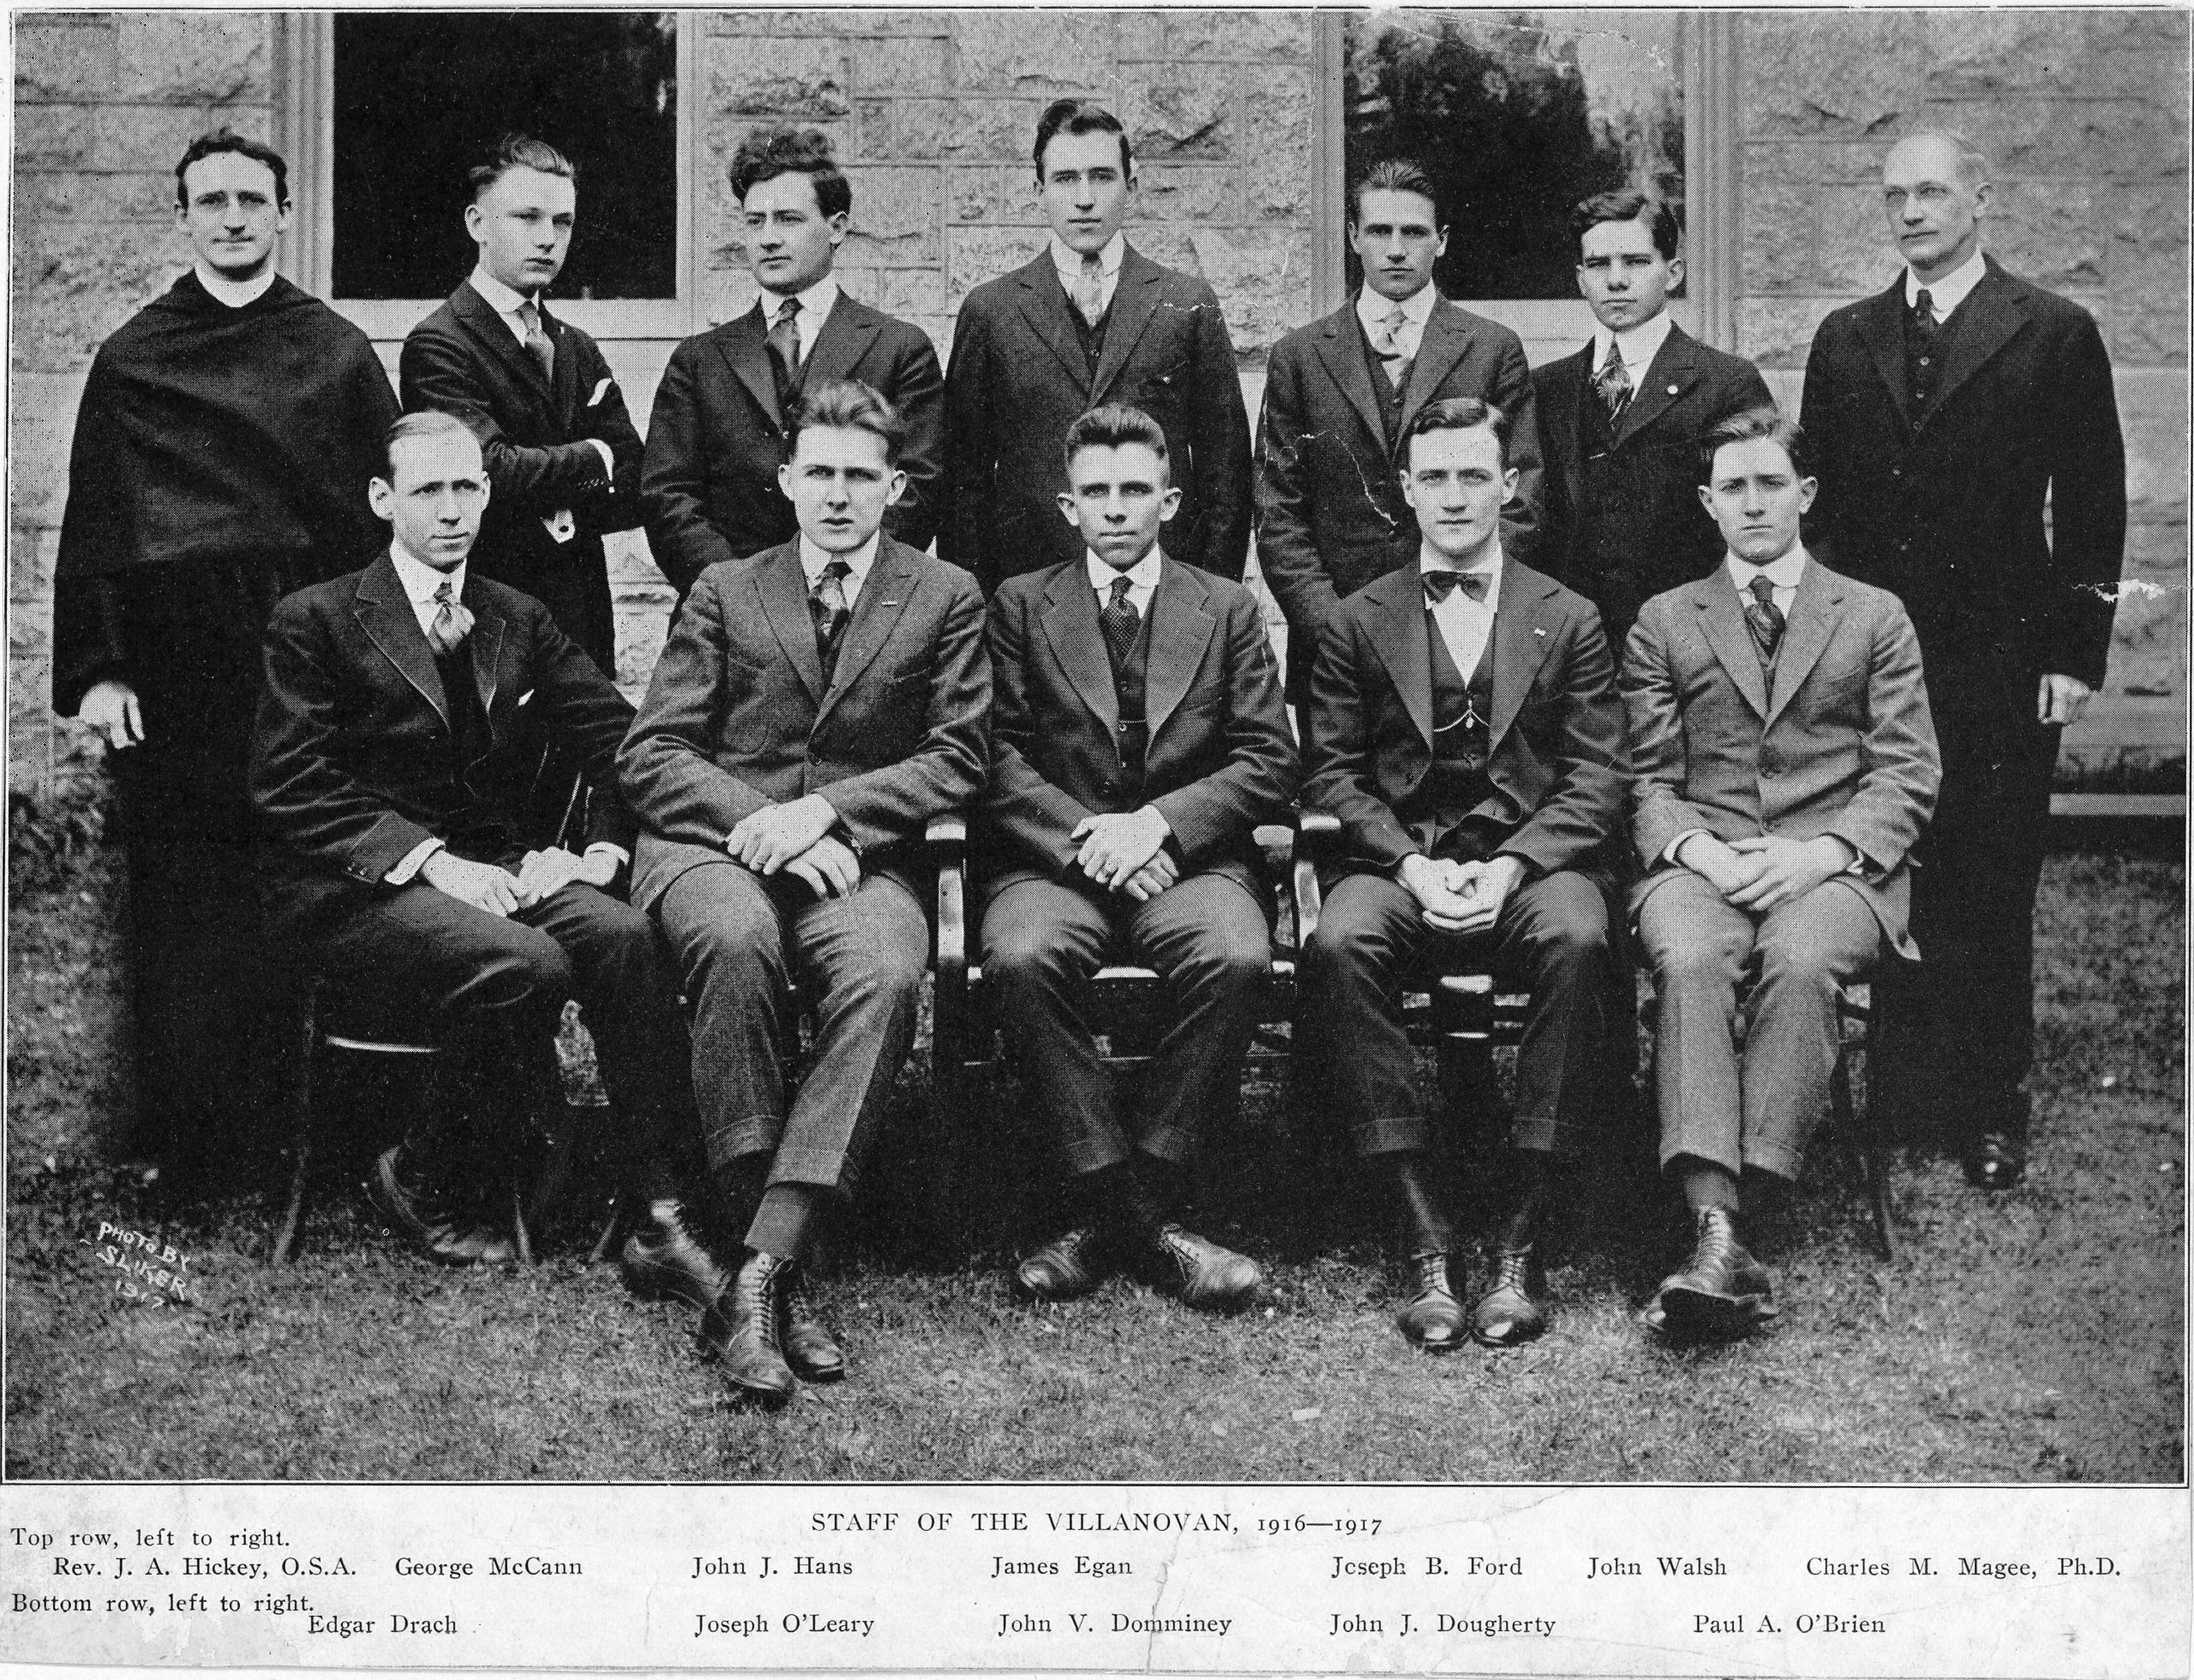 Staff of The Villanovan, 1916-1917.